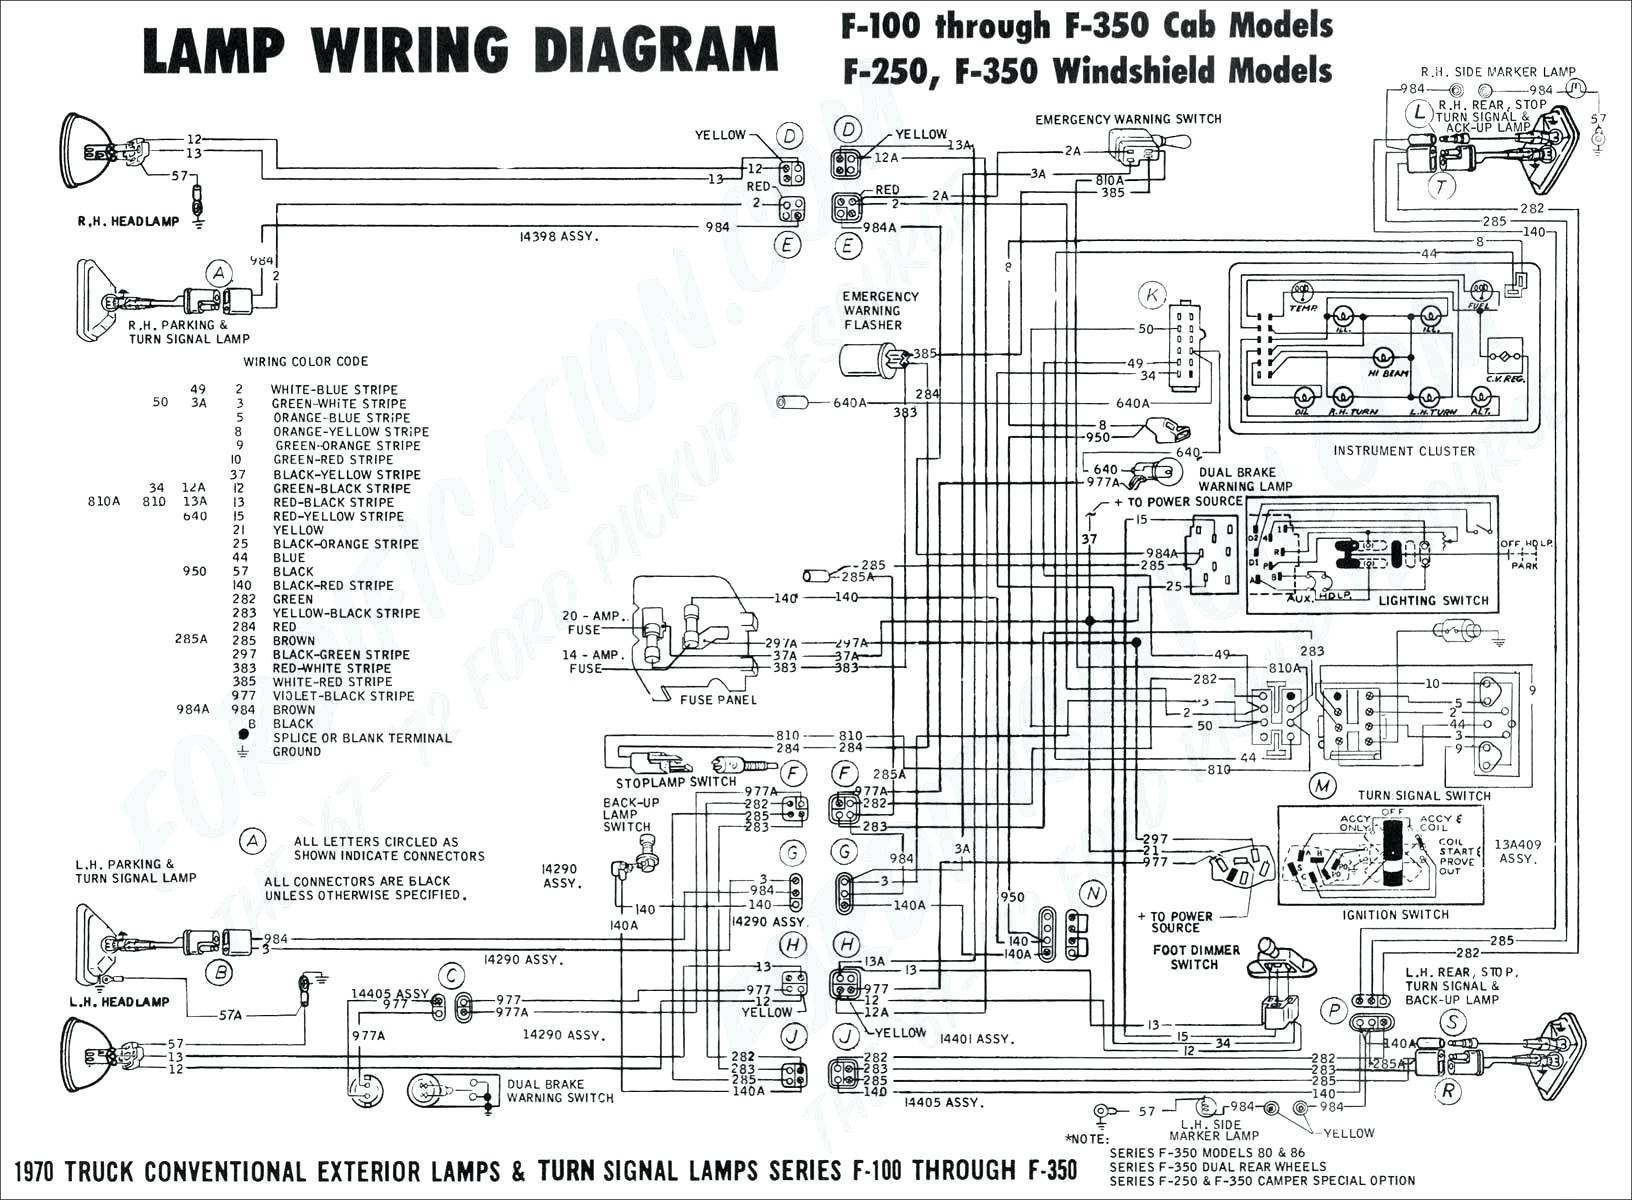 98 F150 Wiring Diagram 08 ford F 150 Abs Wiring Diagram Data Wiring Diagrams • Of 98 F150 Wiring Diagram